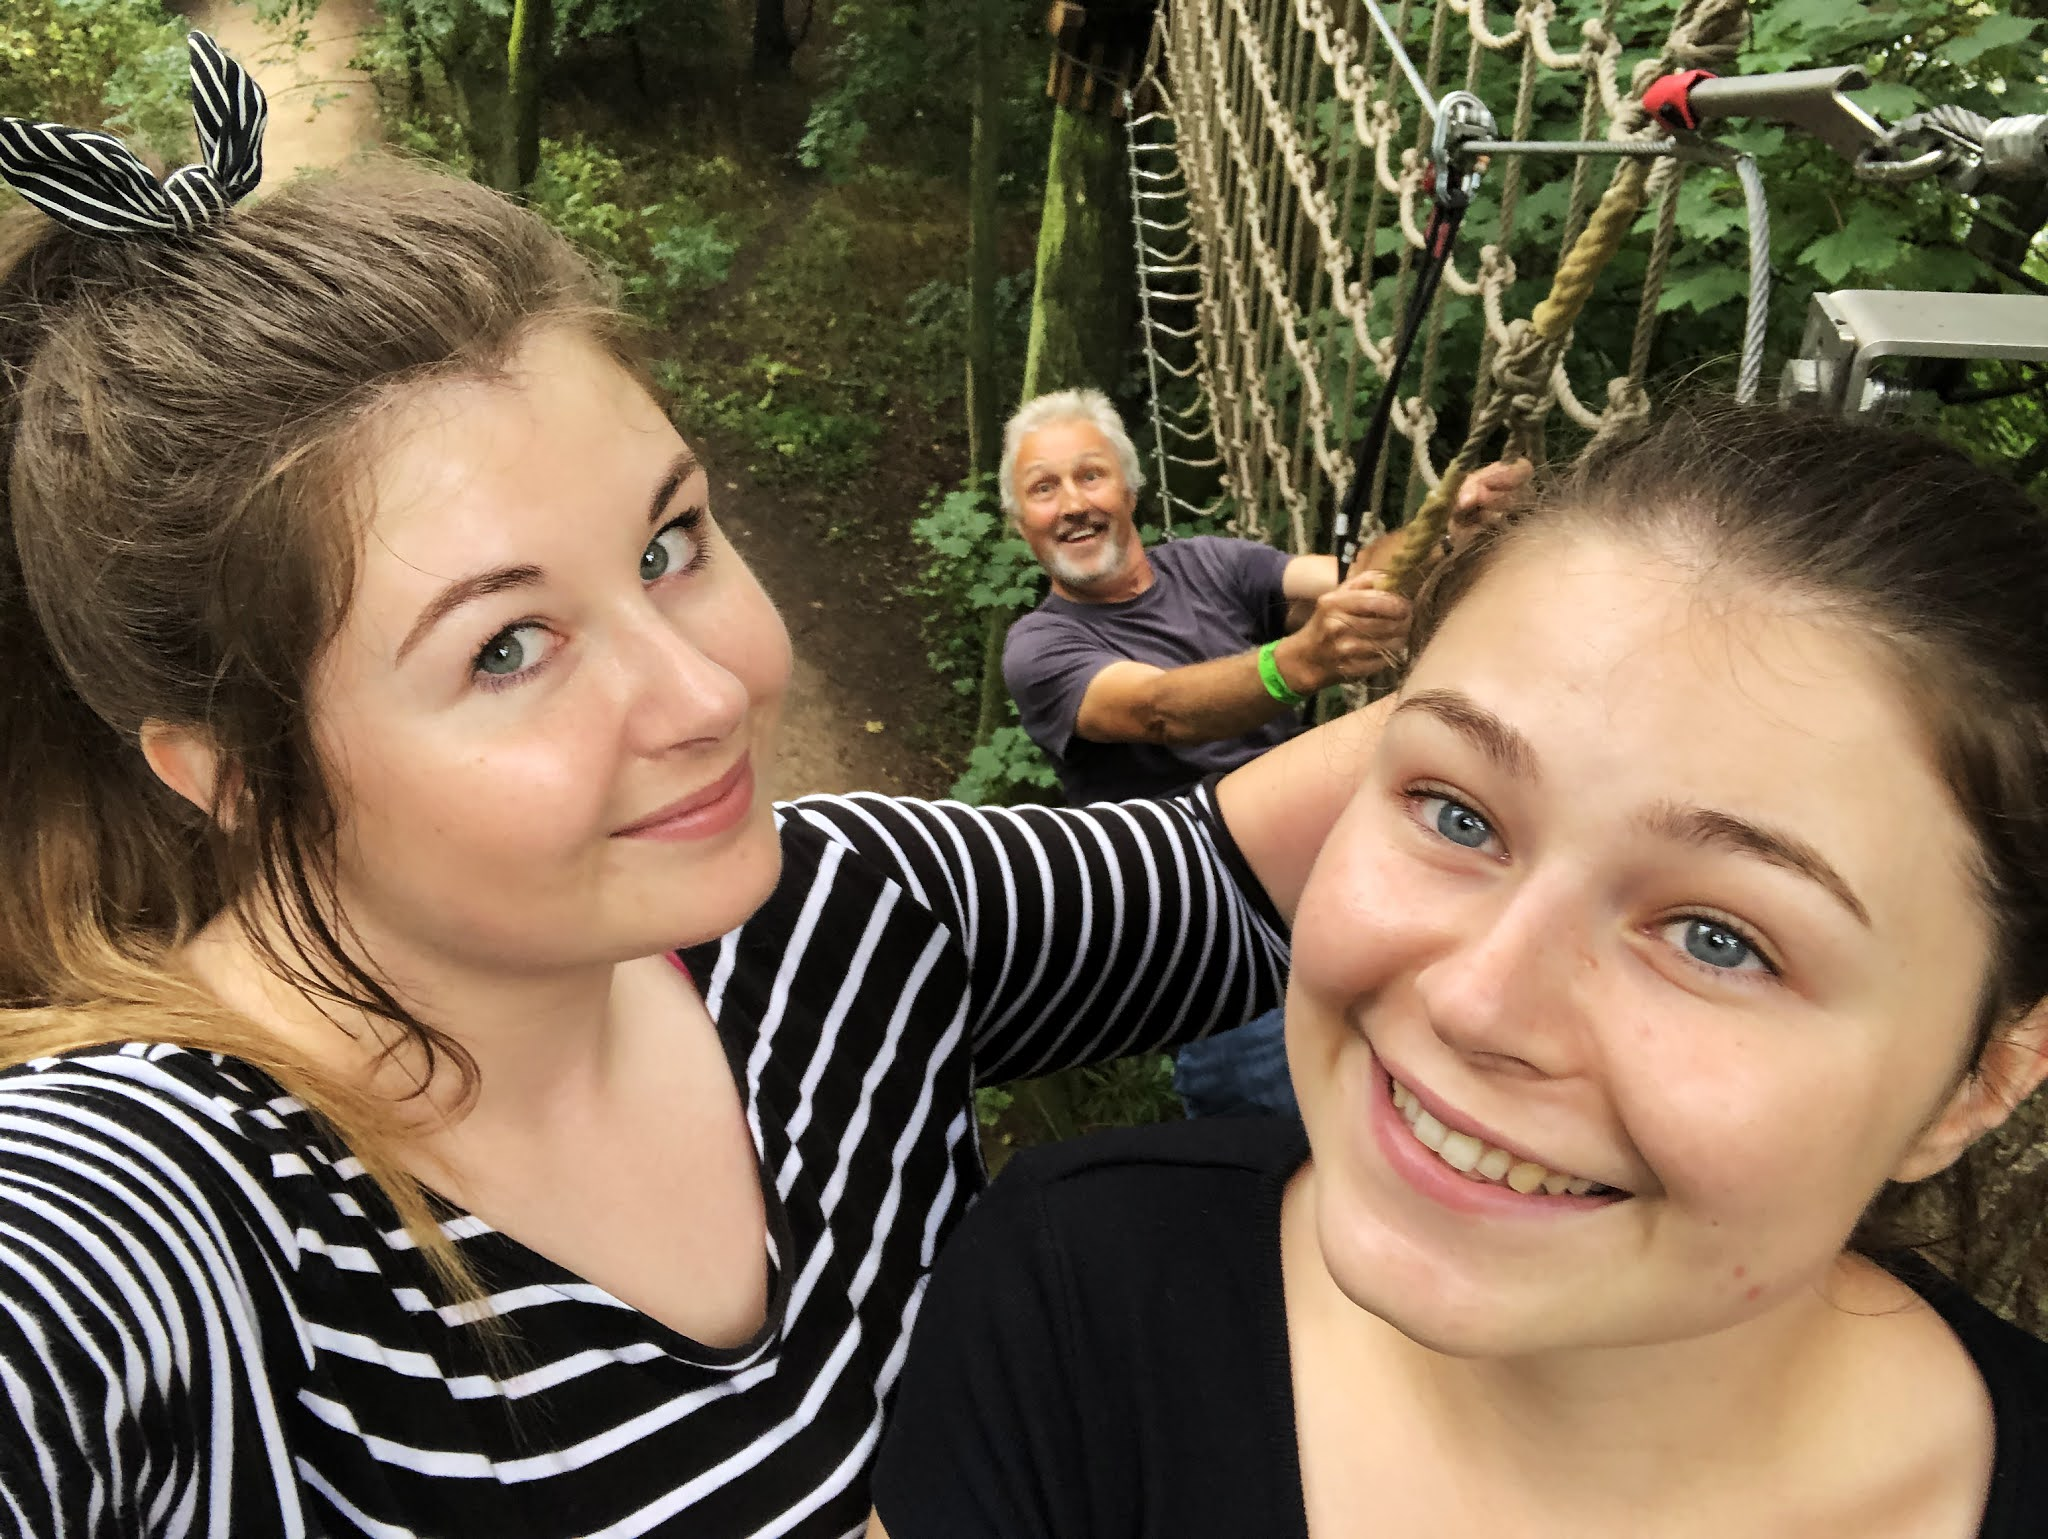 Grace and her sister posing for a photograph up in the trees. Her dad can be seen in the background hanging on to one of the crossings.